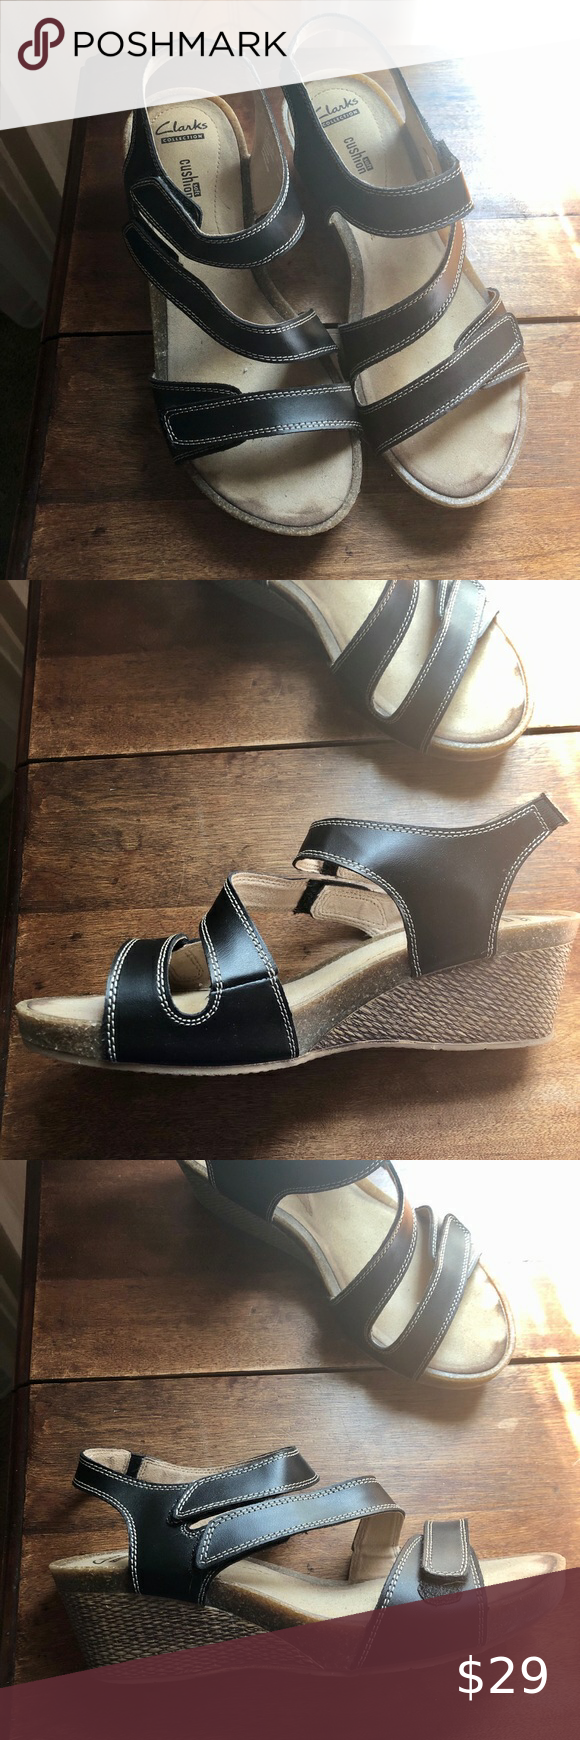 clarks sandals with arch support